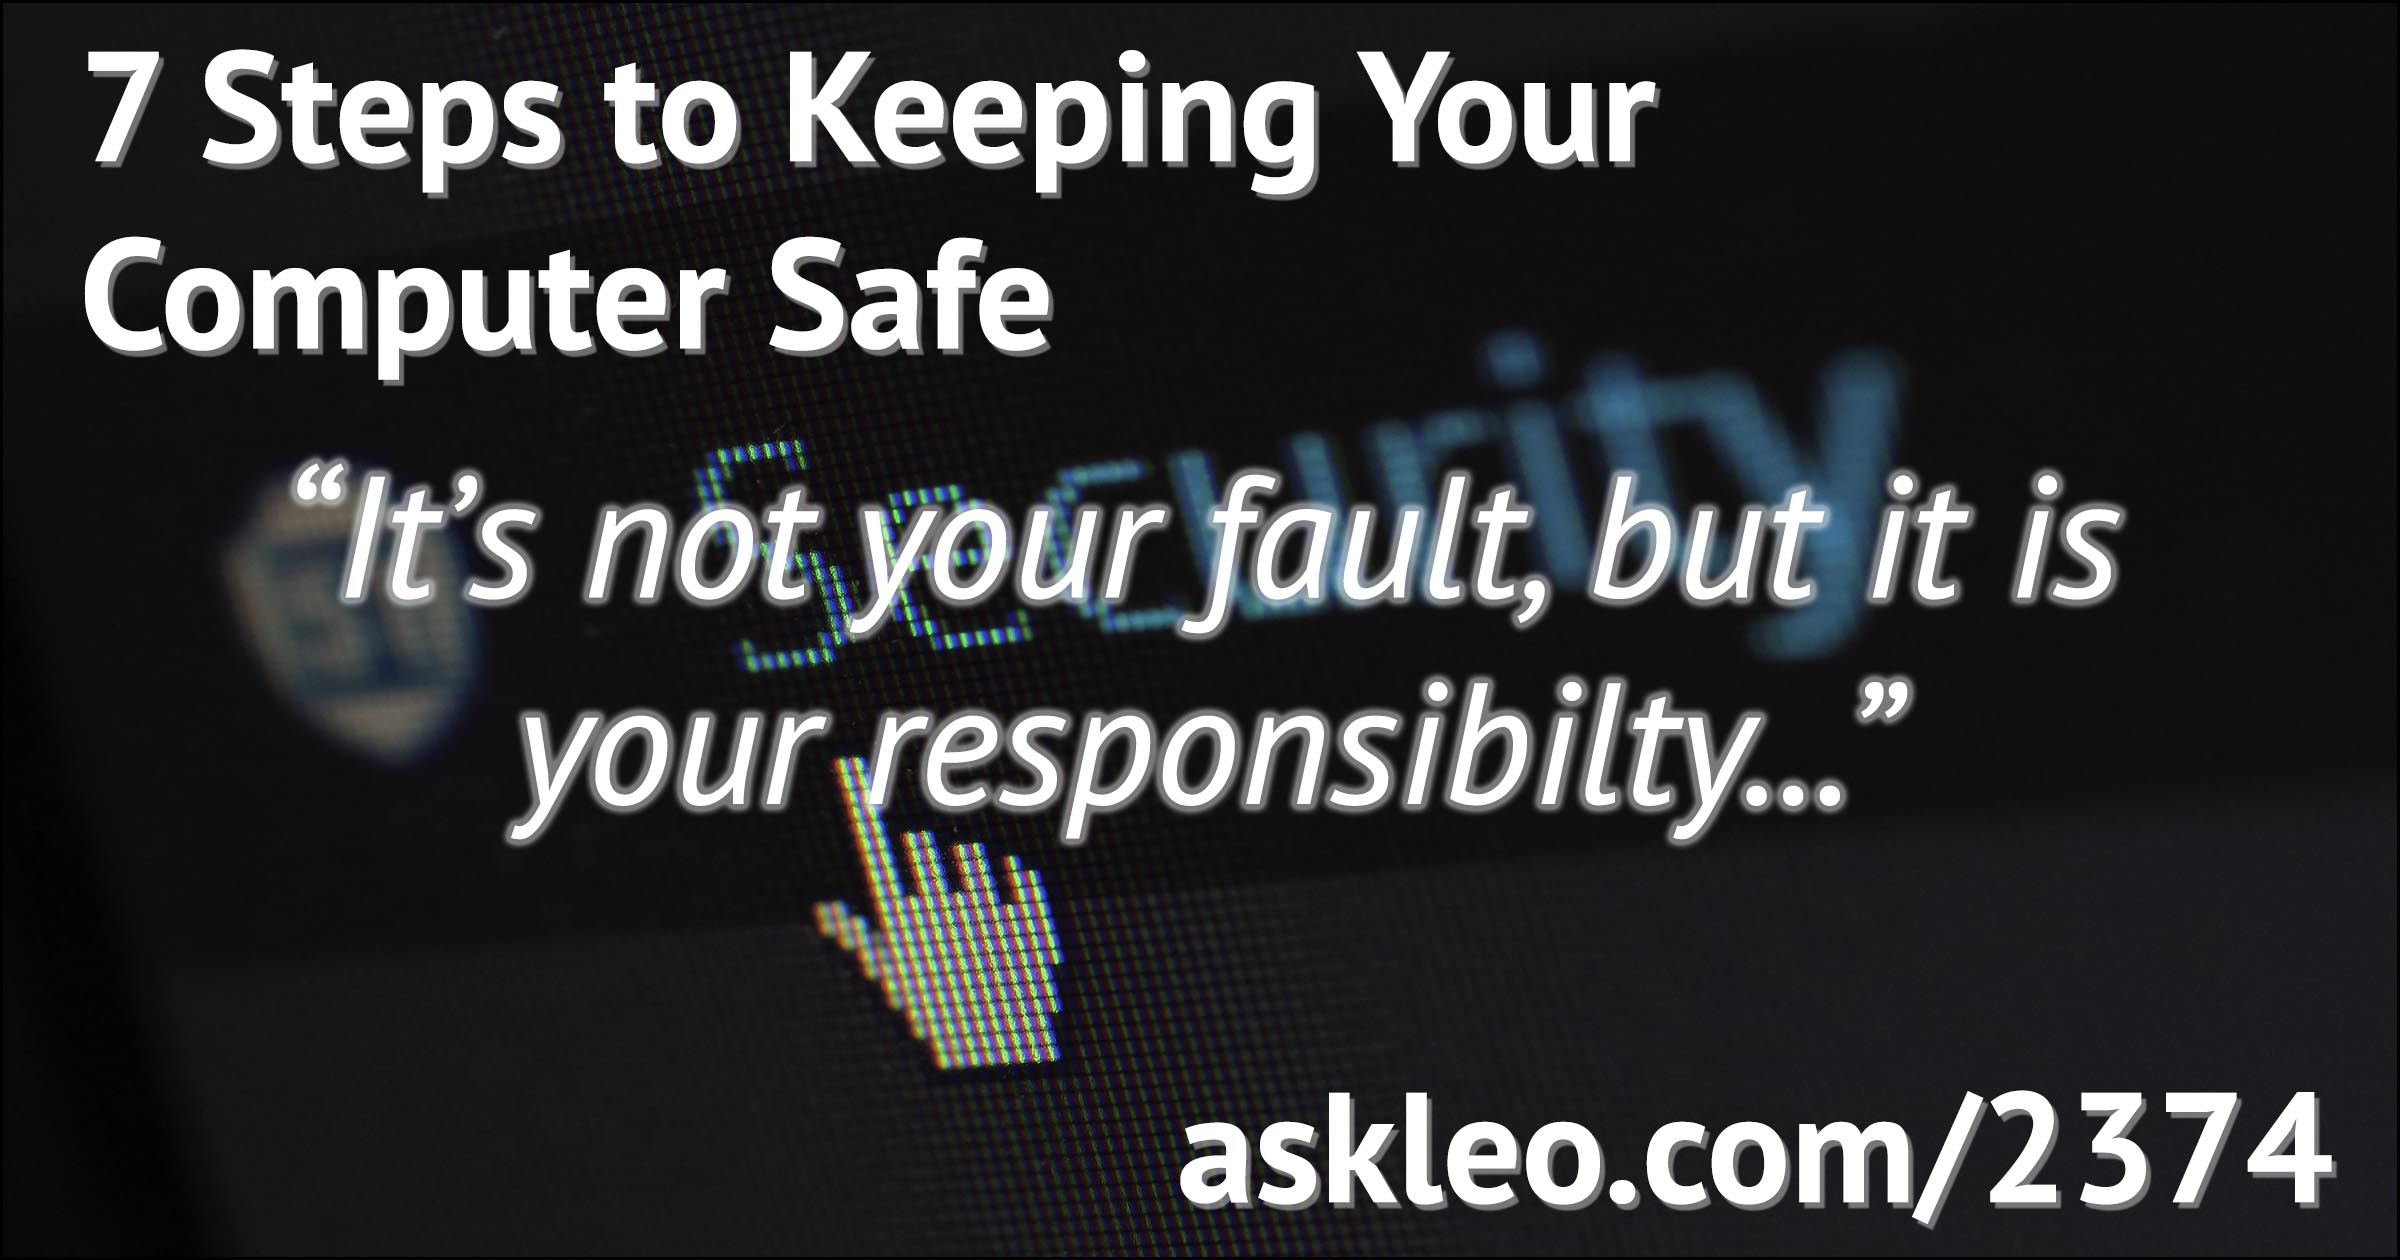 Internet Safety: 7 Steps to Keeping Your Computer Safe on the Internet